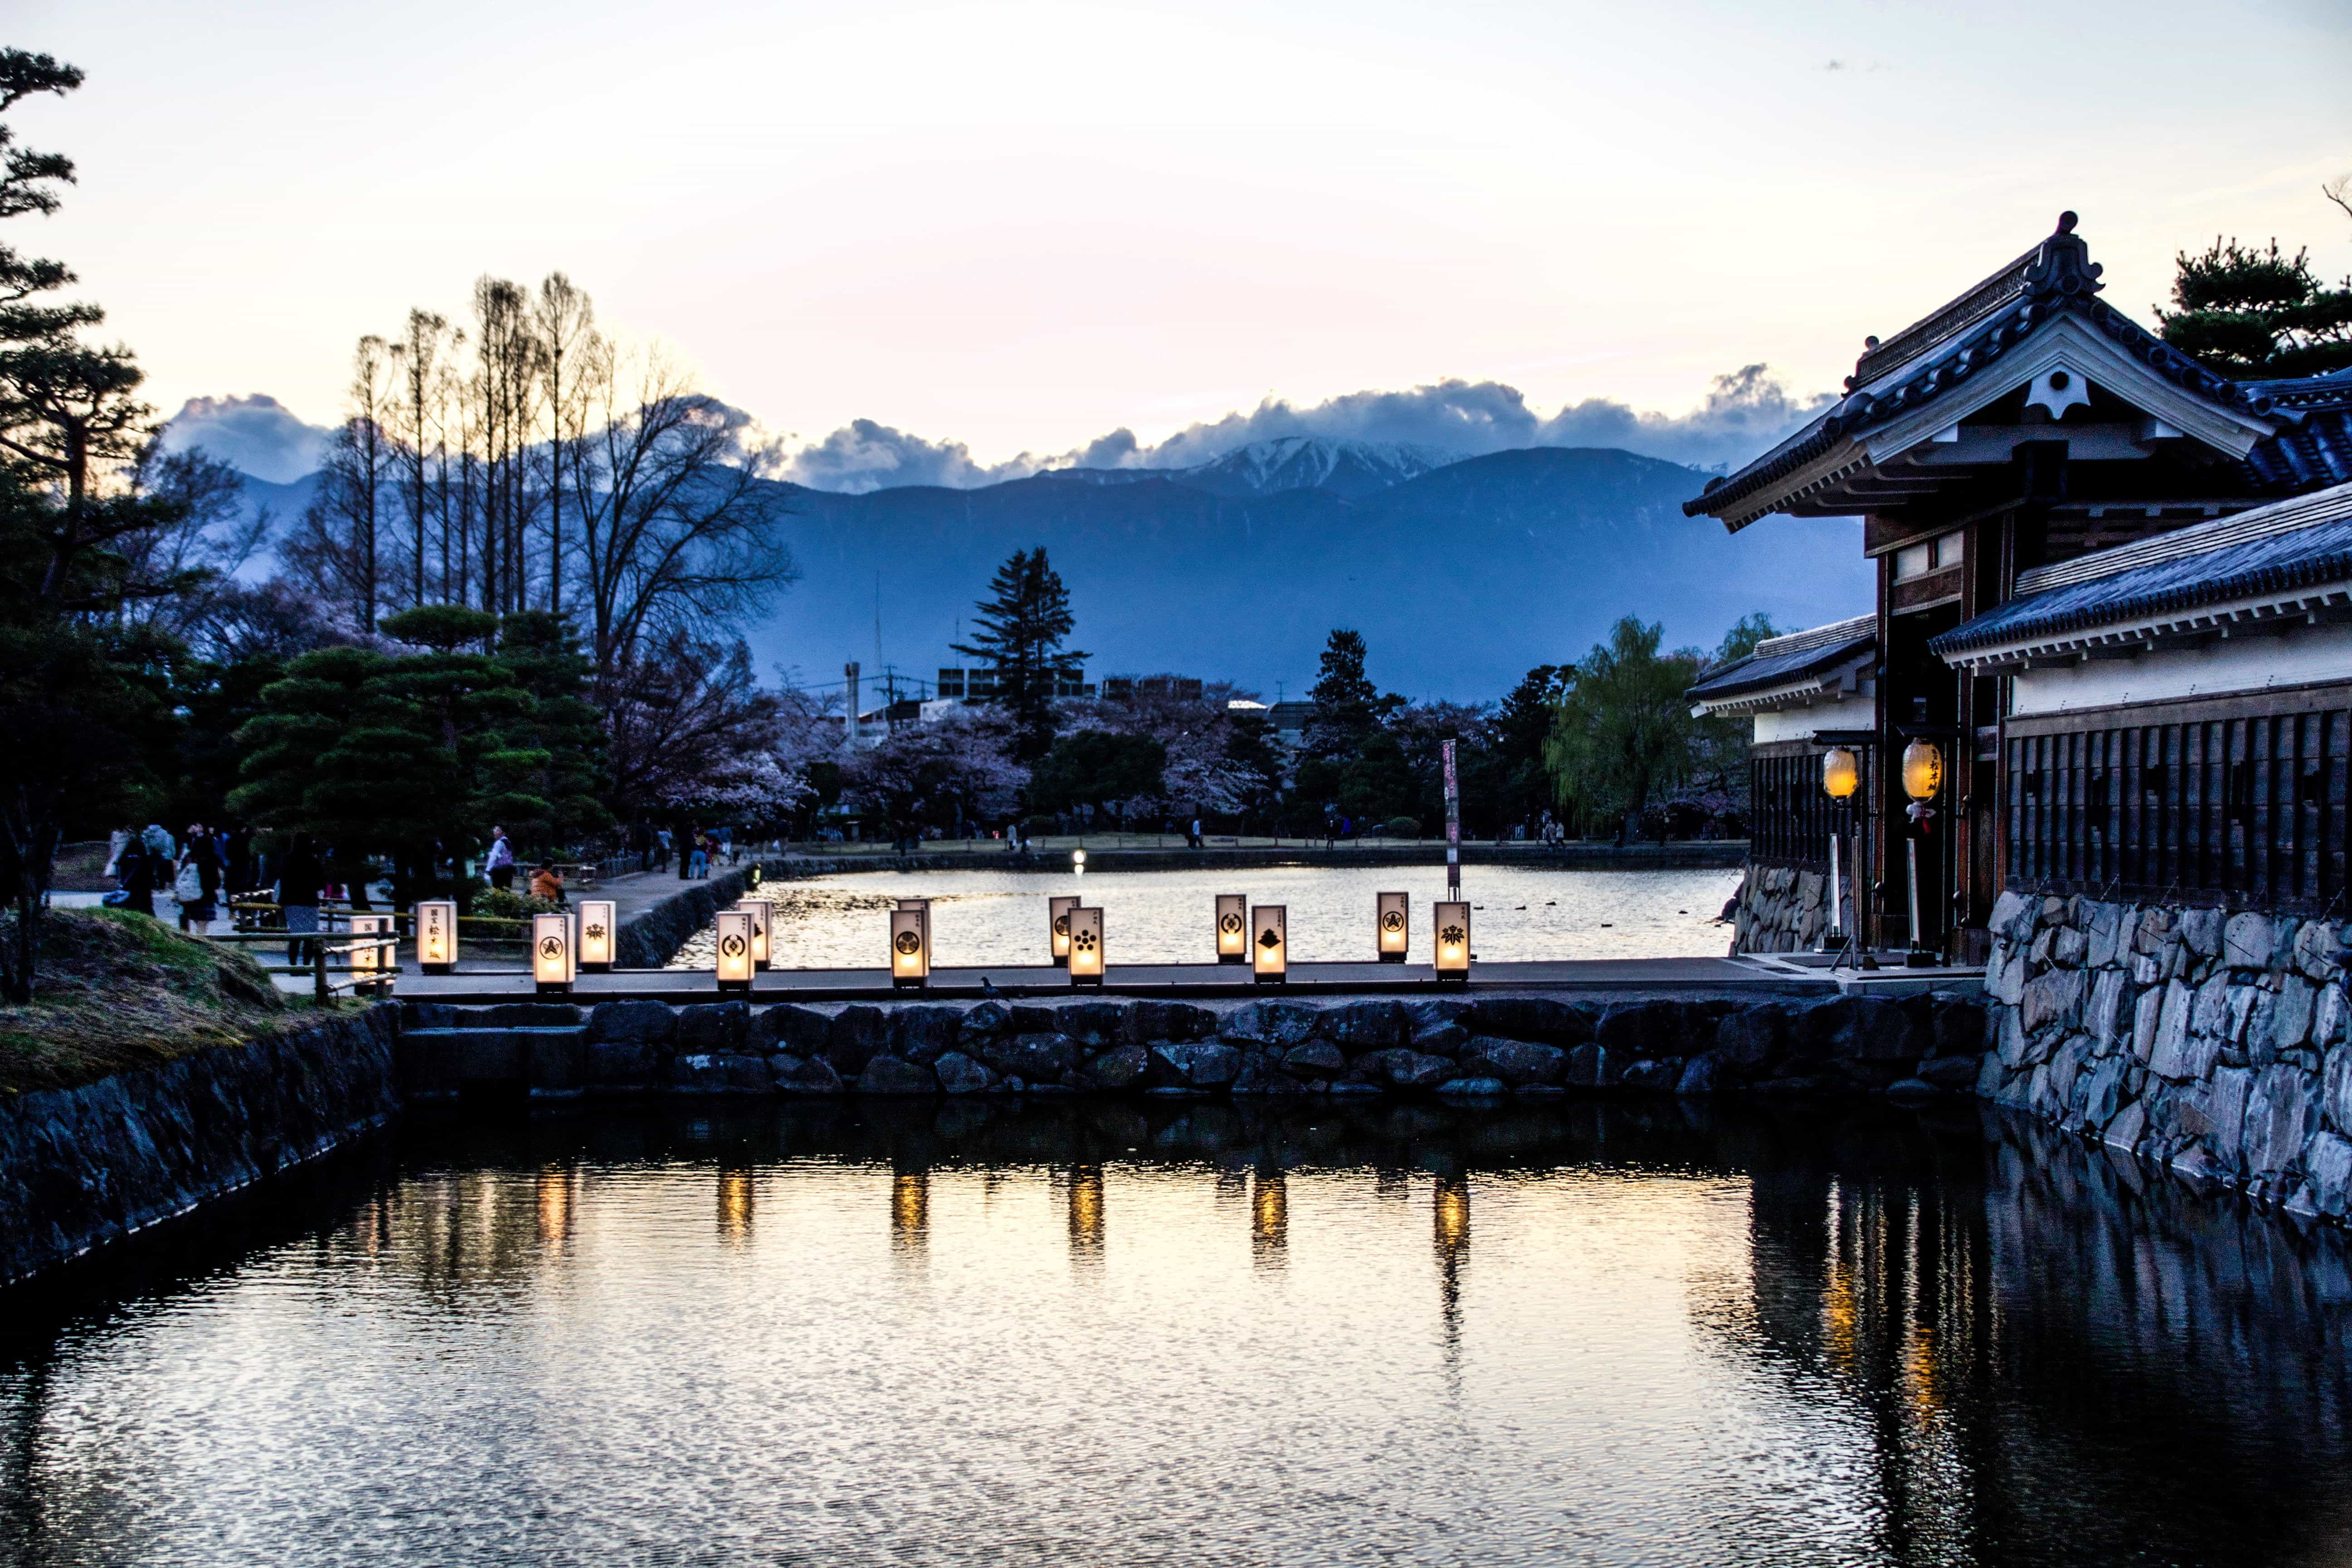 If you're journeying to Japan for cherry blossom season, Matsumoto Castle is hands down the best spot to view them without incessant crowds! Read more at www.thefivefoottraveler.com